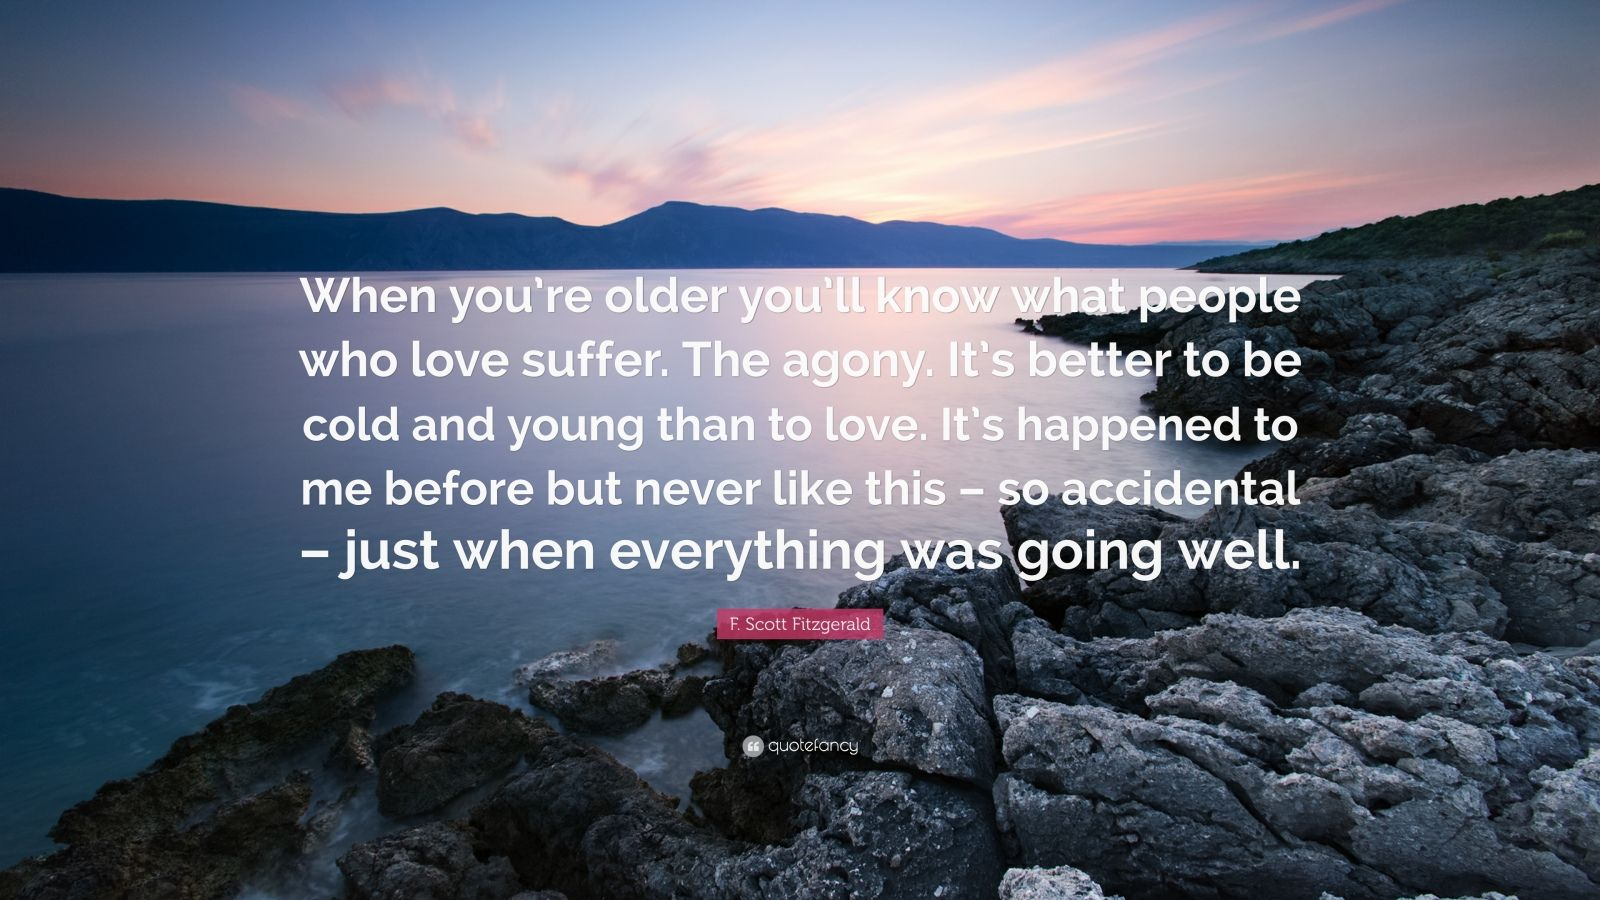 F. Scott Fitzgerald Quote: U201cWhen Youu0027re Older Youu0027ll Know